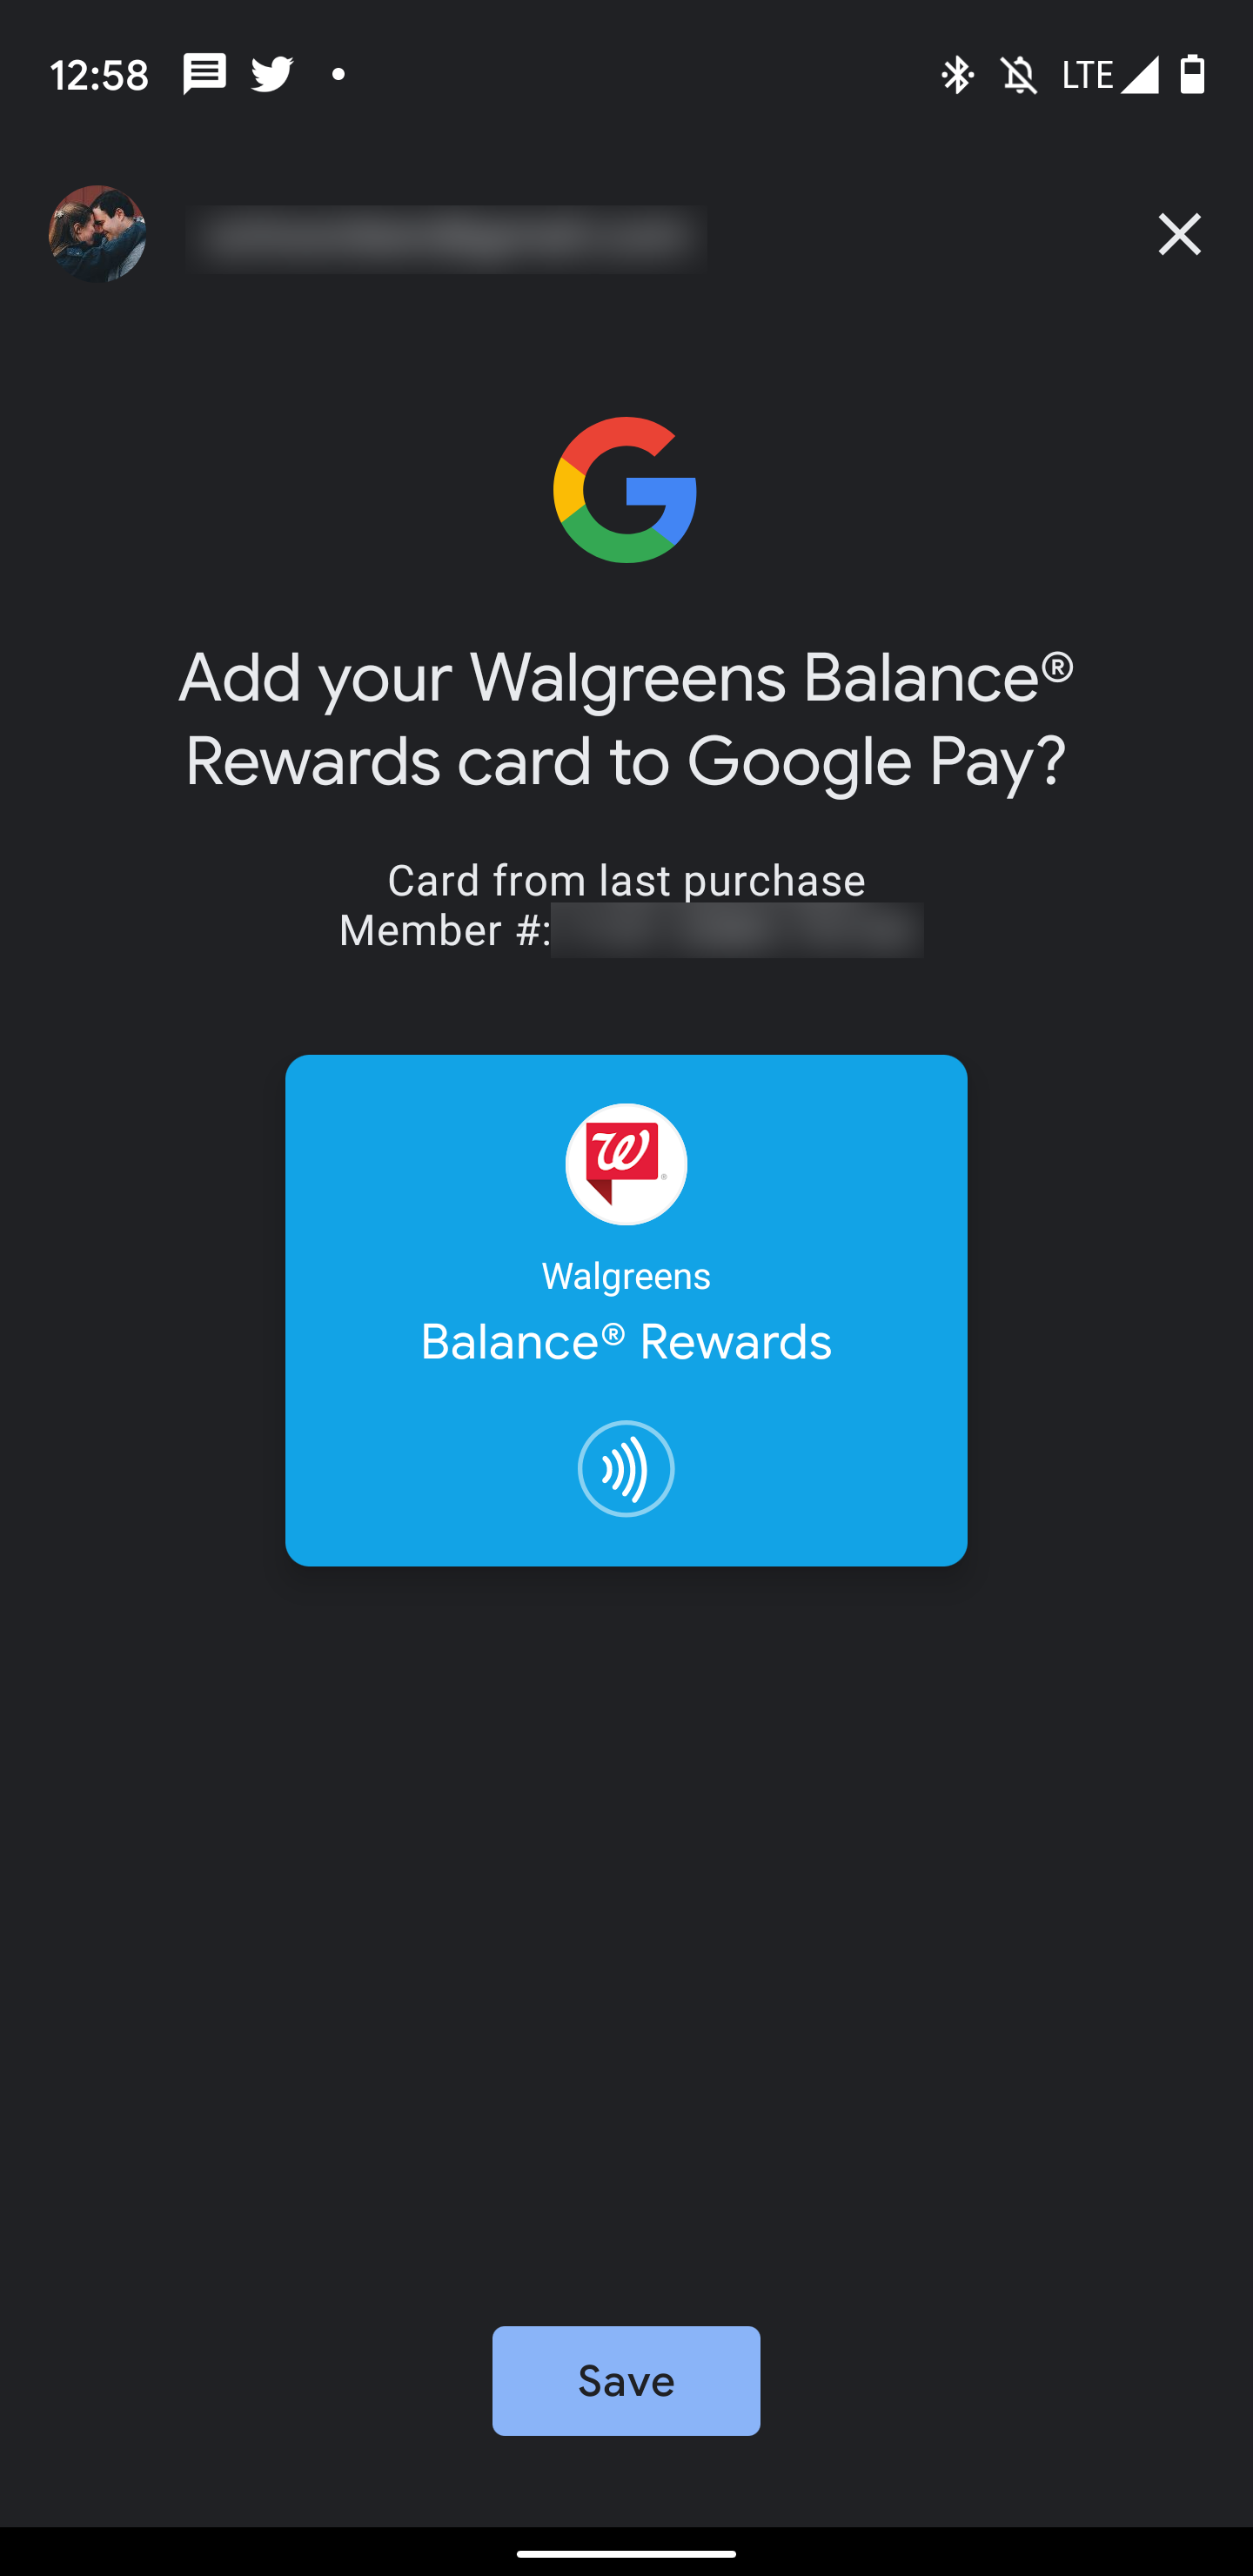 google pay import rewards card in-store purchase